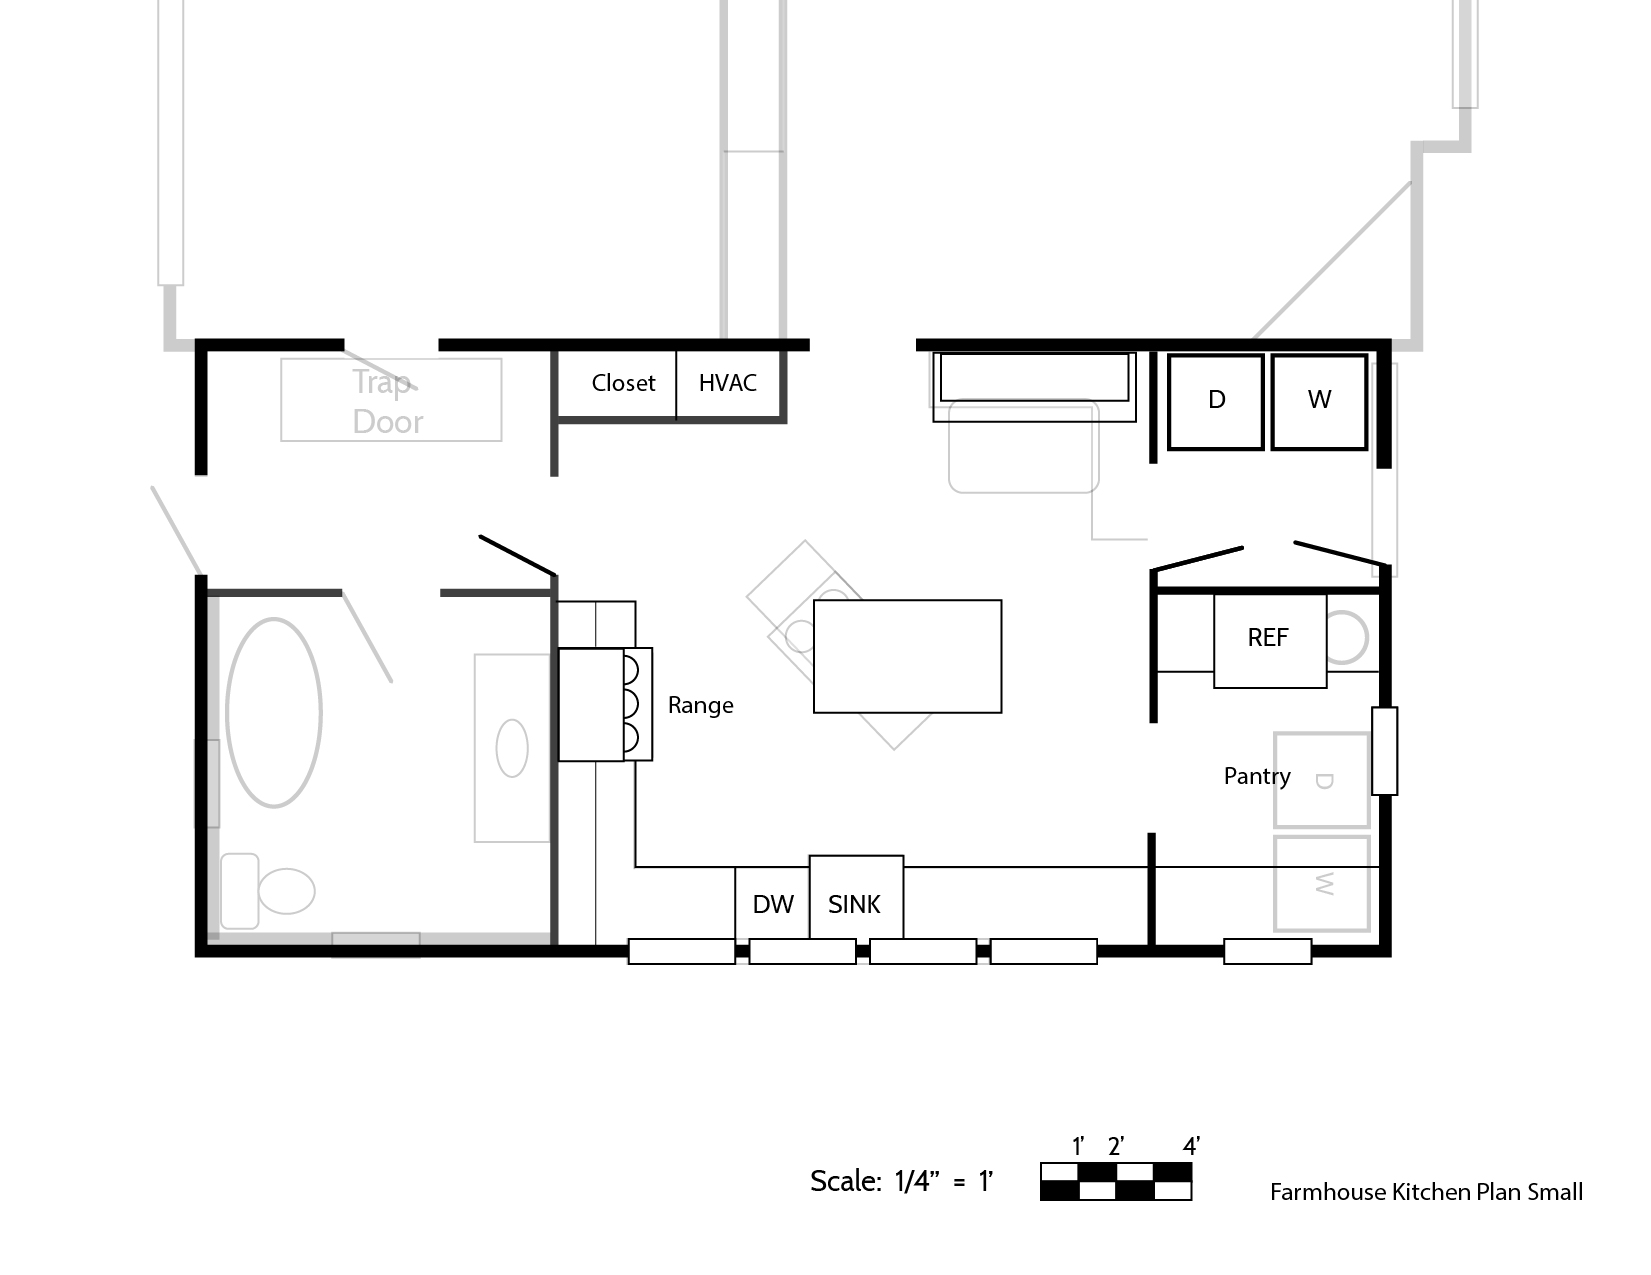 Our Final Farmhouse Kitchen Floor Plan (And How We Made the ... on